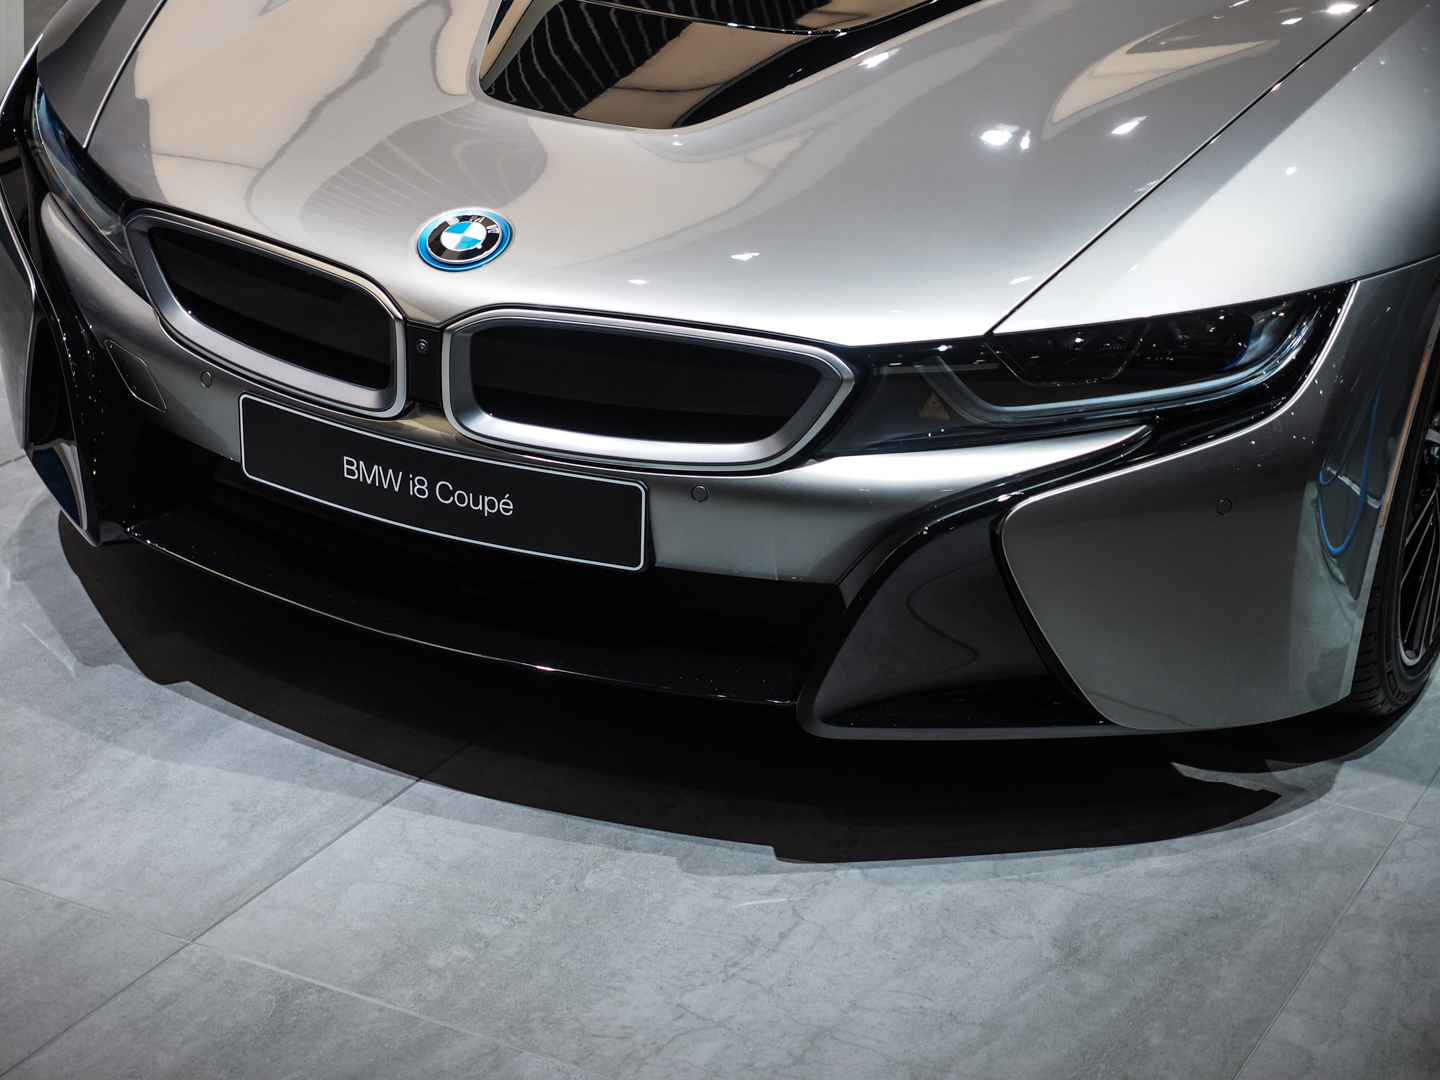 2018 Detroid Auto Show BMW i8 Coupe LCI Refresh Facelift 11